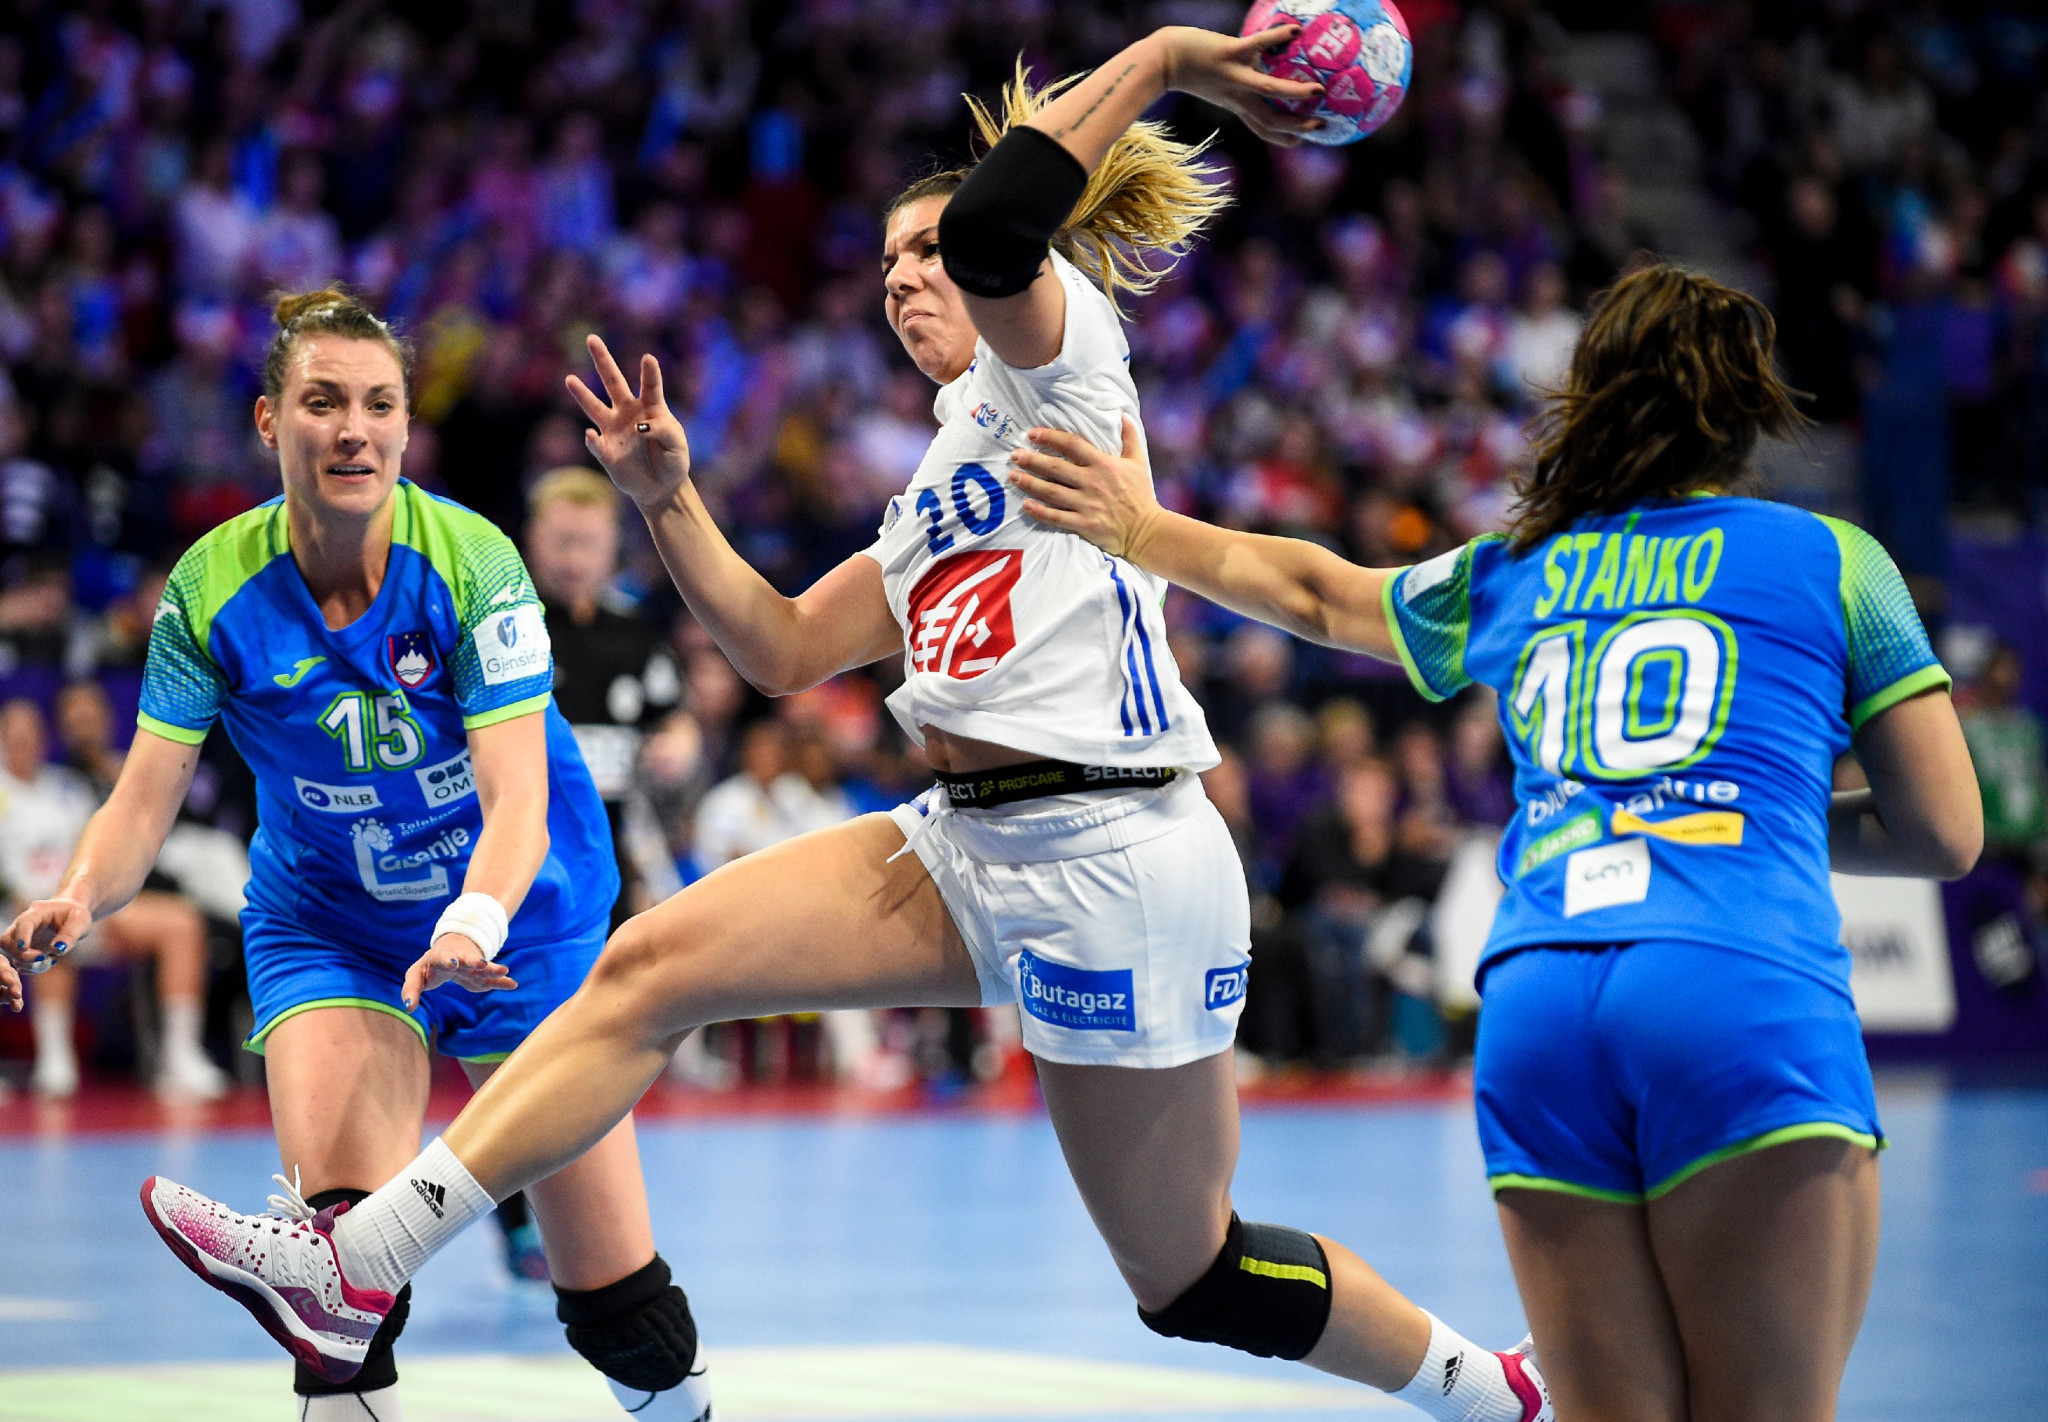 Hosts France get first win of European Women's Handball Championships after disappointing start